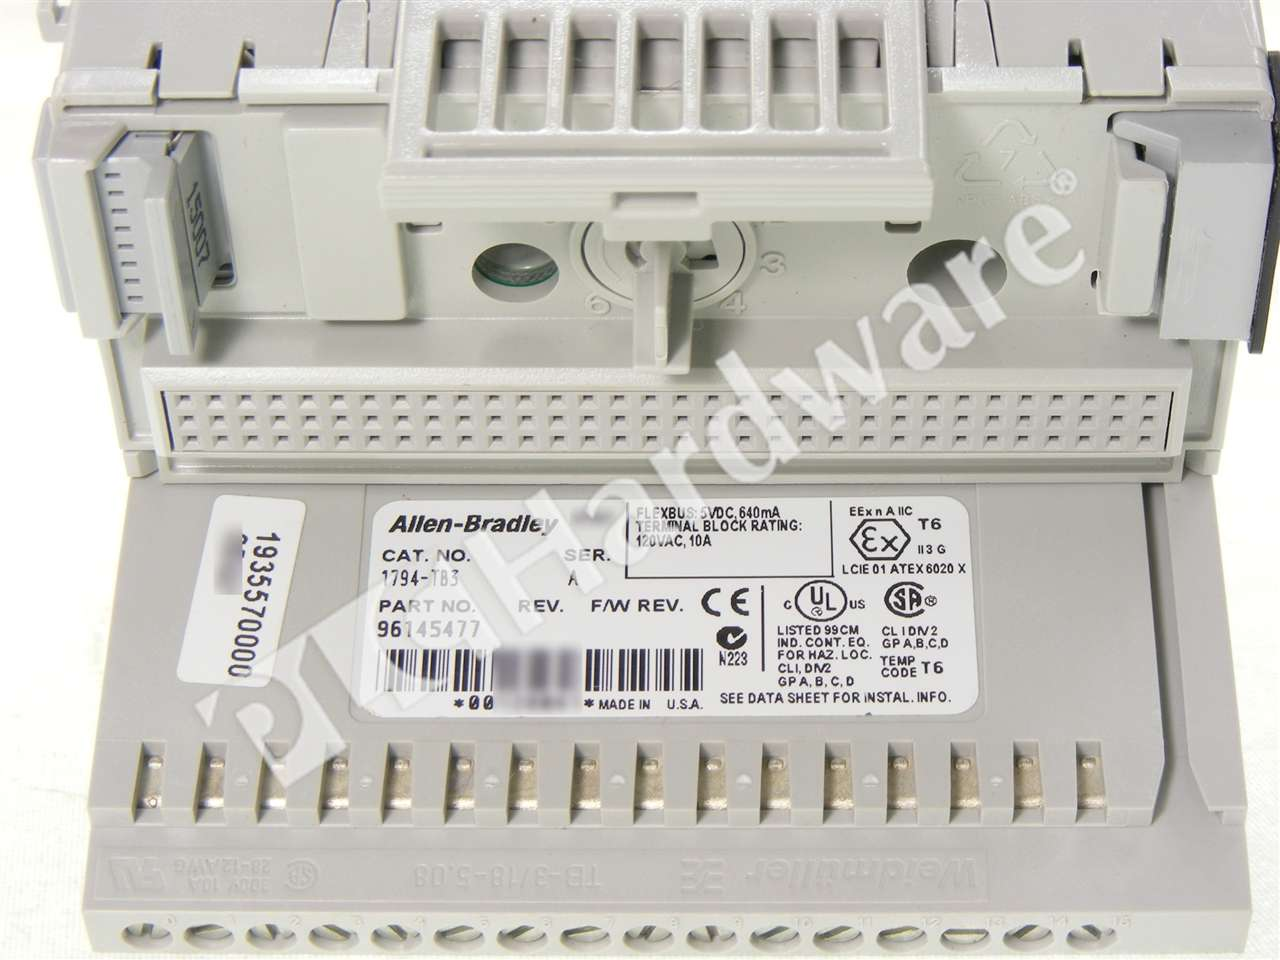 RA 1794 TB3 A NSO_2_13_07_11_10_28_47_b plc hardware allen bradley 1794 tb3 series a, new factory sealed 1794-tb3 wiring diagram at highcare.asia